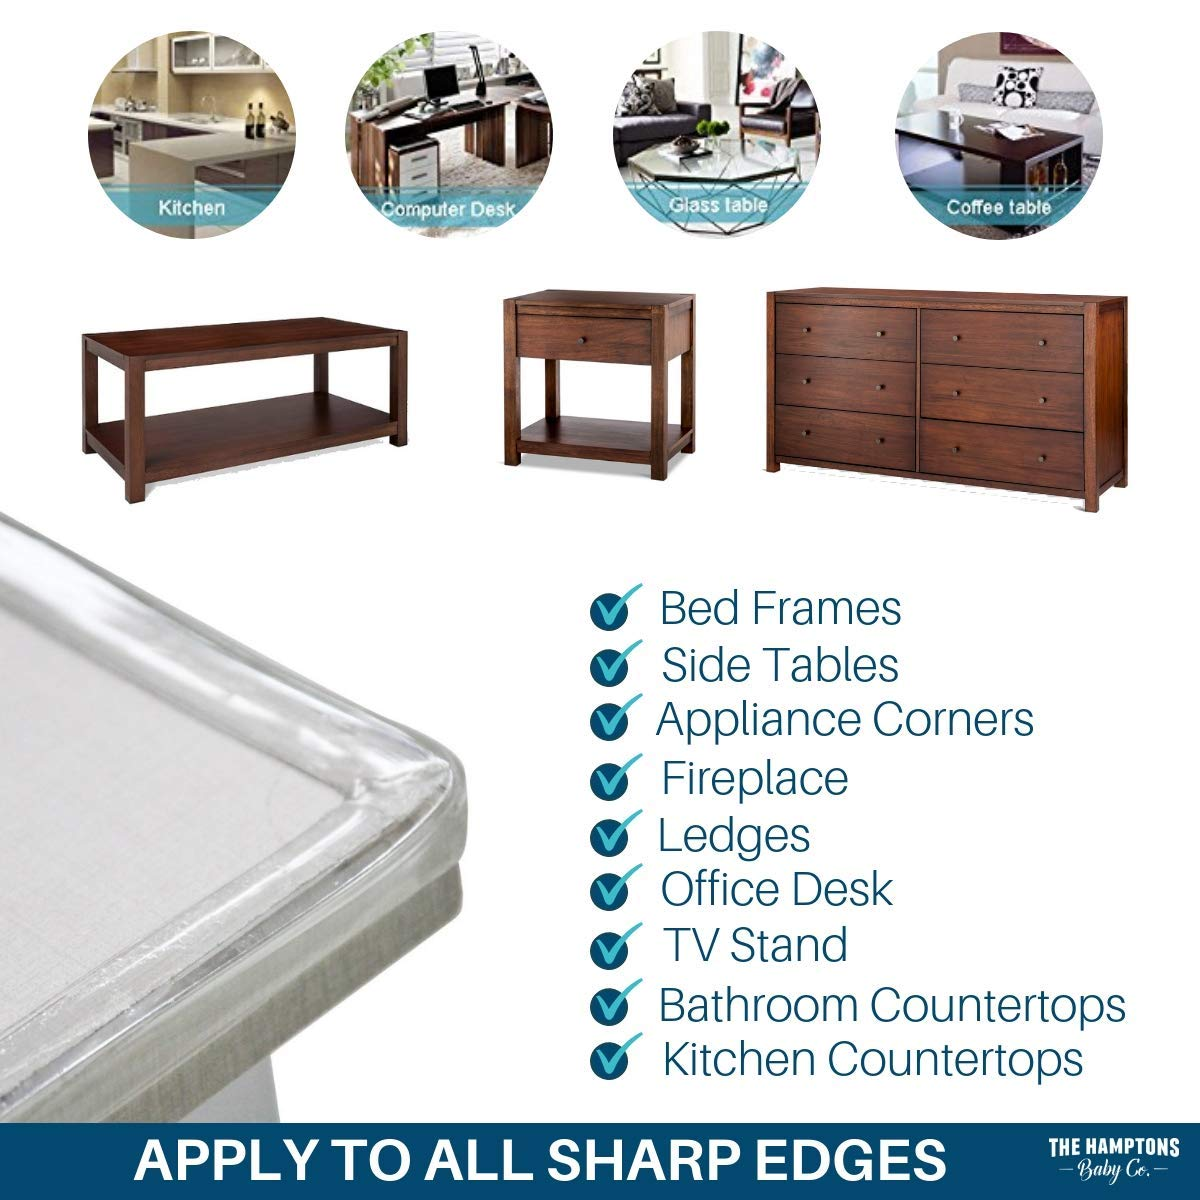 Clear Edge Protectors by The Hamptons Baby - 9-1ft Pieces with Premium Gel Adhesive - Guard Against Injuries on Sharp Edges in Your House, Use on Coffee & Dining Tables, Dressers, Desks and Much More by The Hamptons Baby (Image #7)